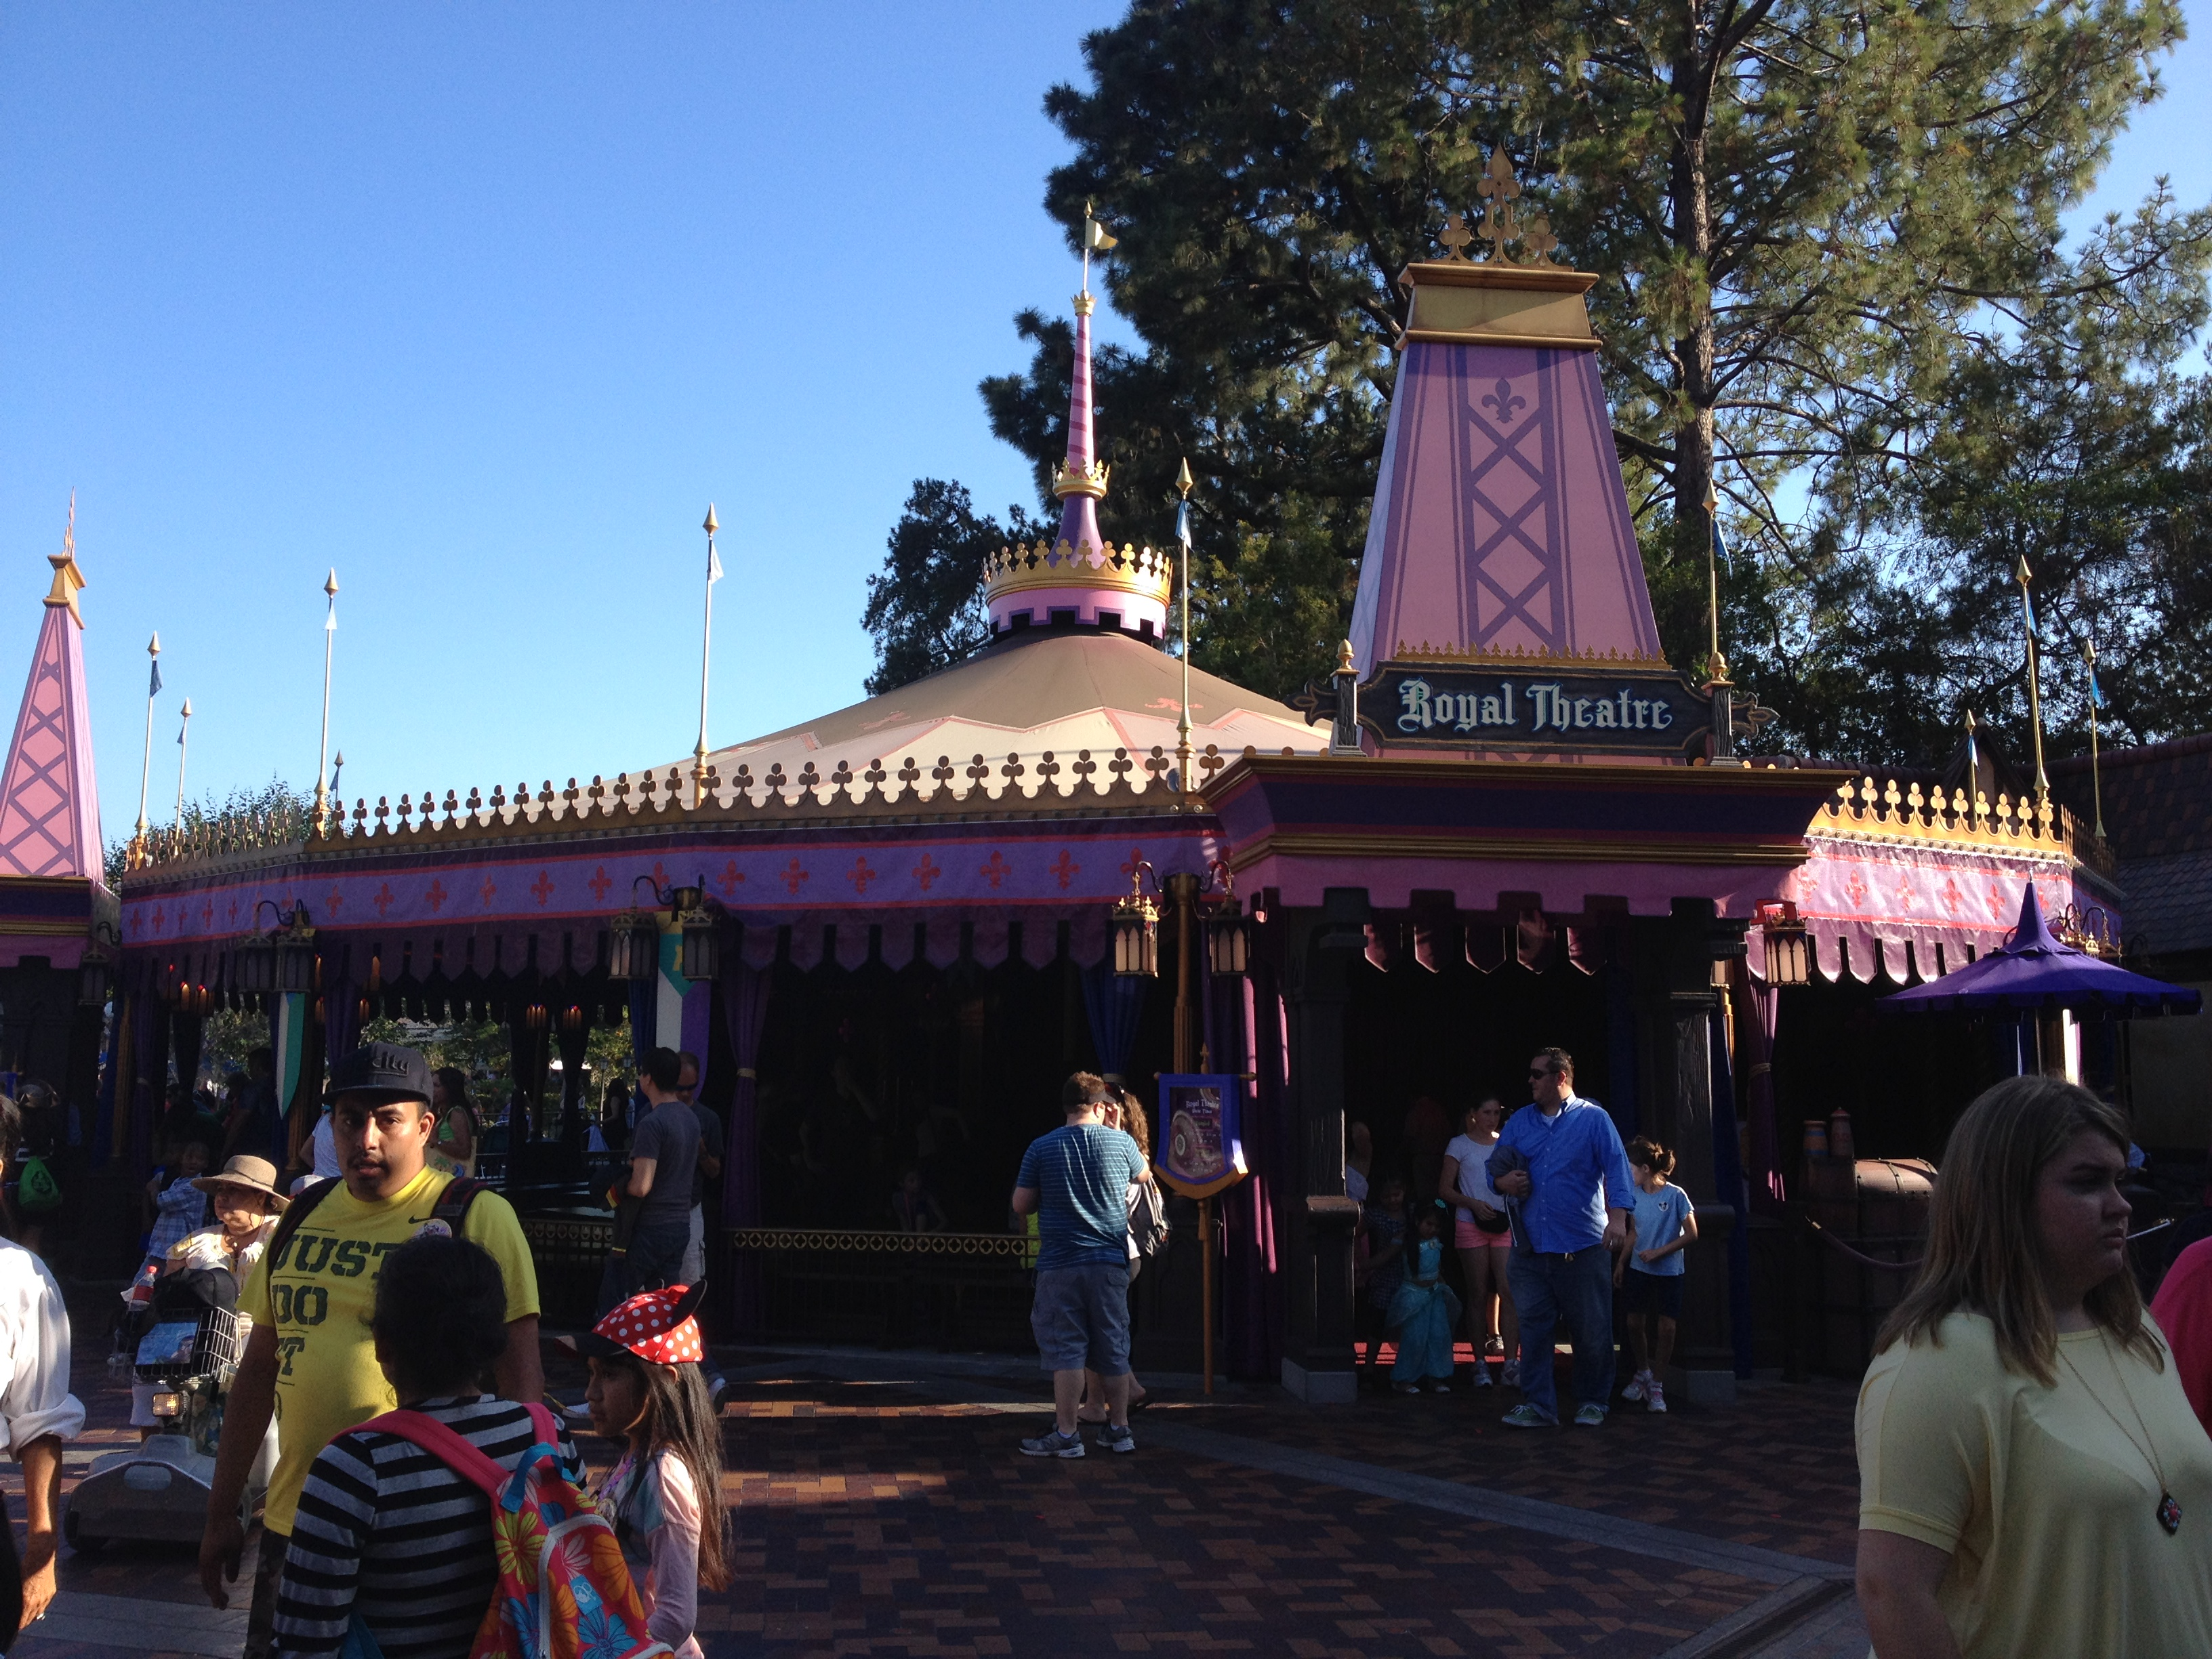 Top 10 Things Not to Miss at Disneyland